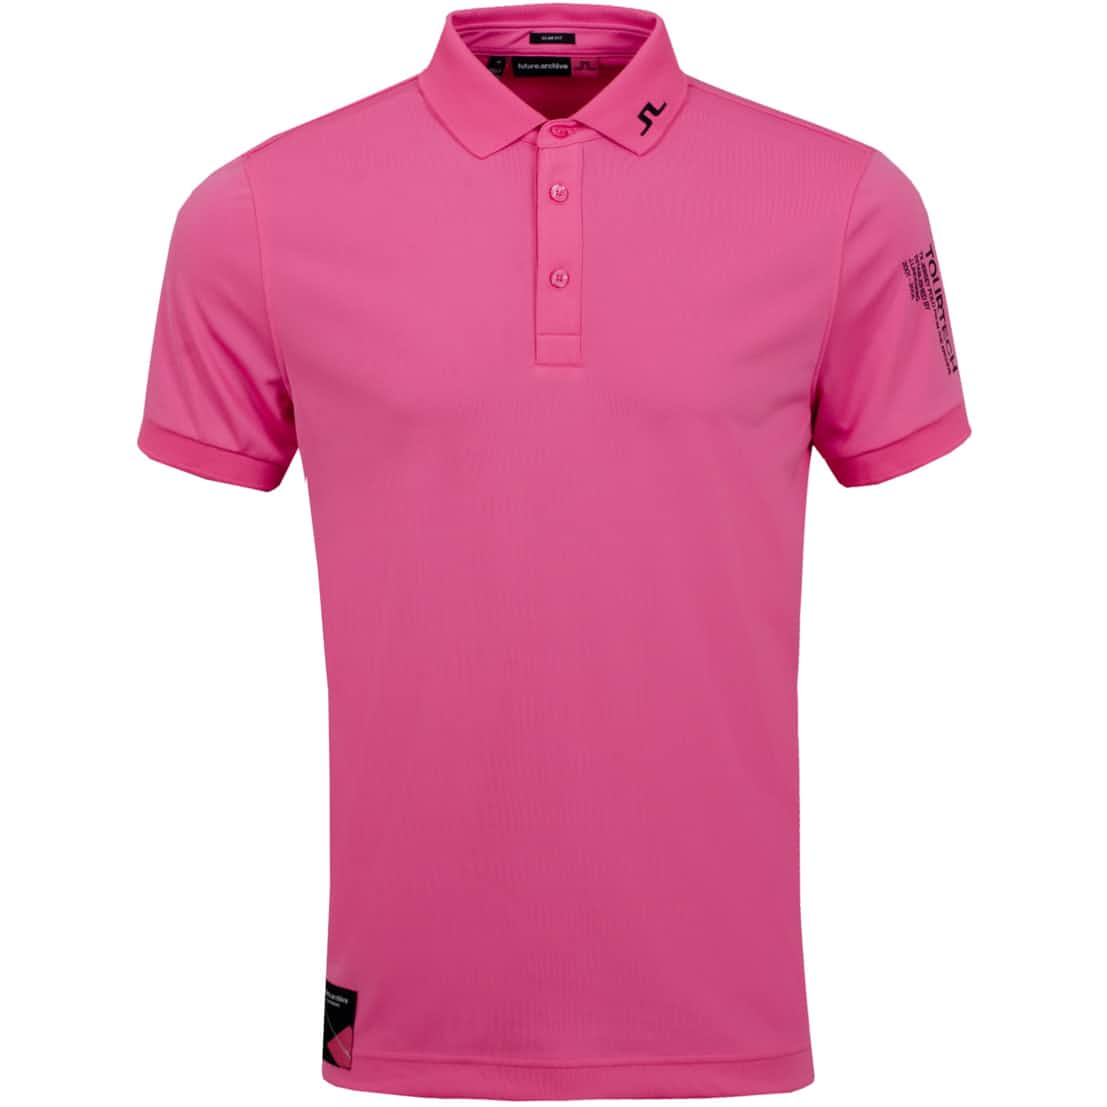 Tour Tech Archived Pop Pink - SS20